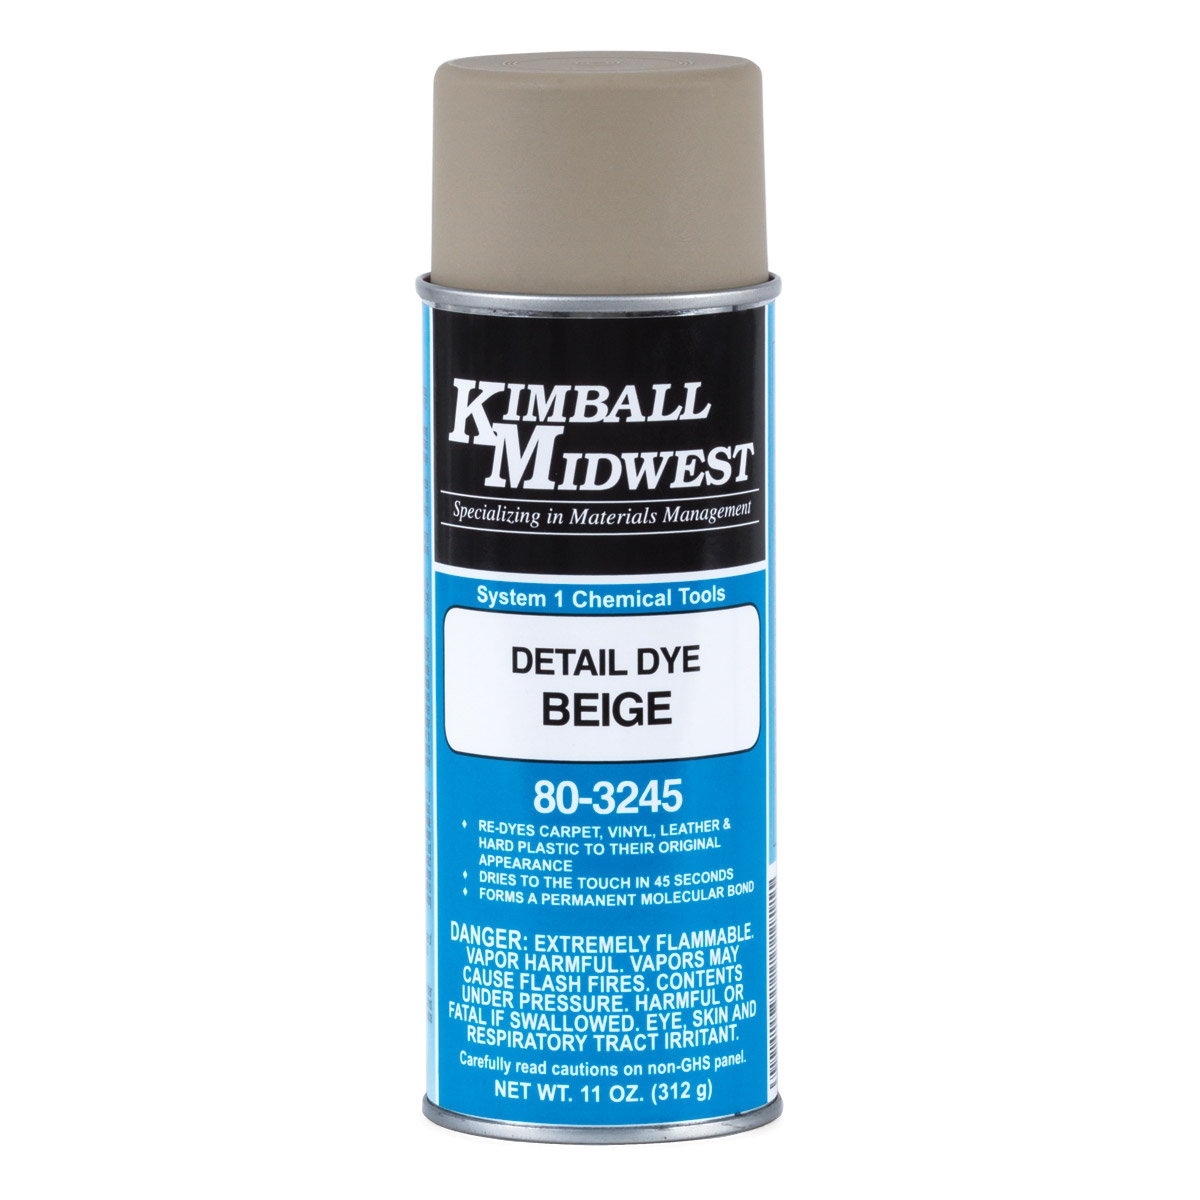 Beige Detail Dye - Kimball Midwest